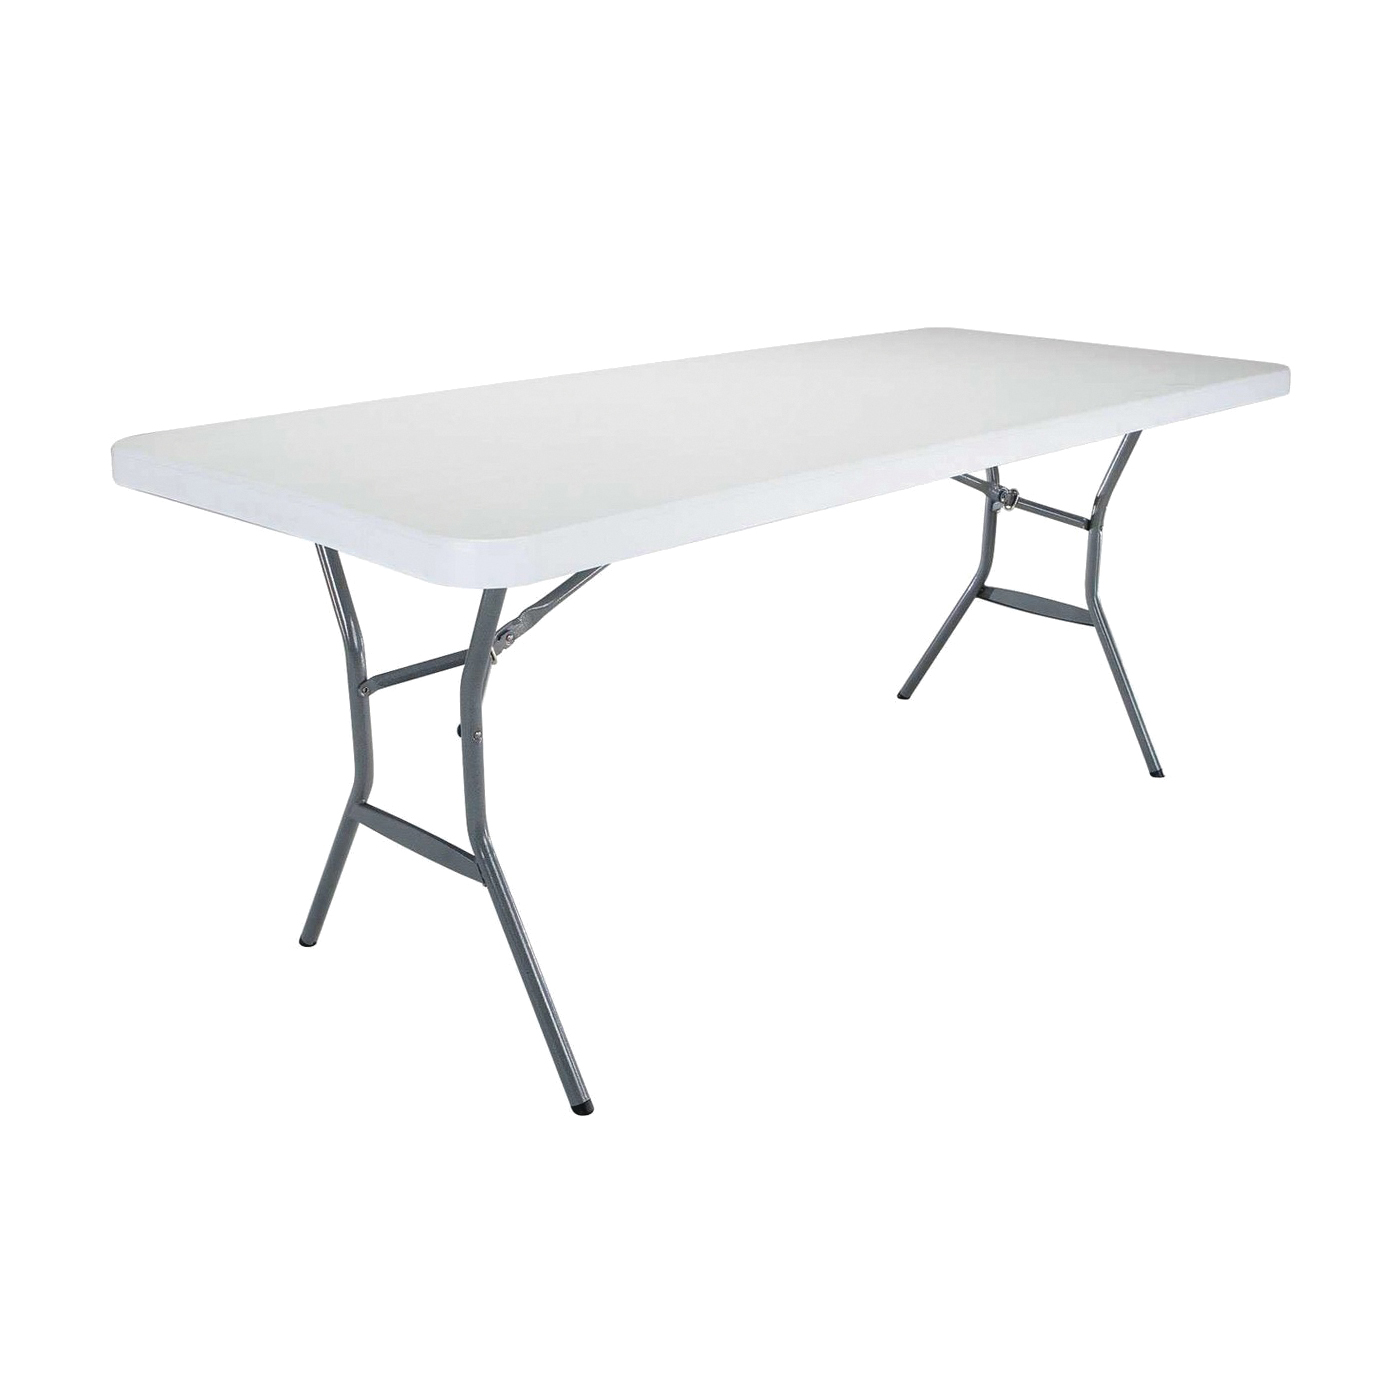 Picture of Lifetime Products 2924 Folding Table, Steel Frame, Polyethylene Tabletop, Gray/White